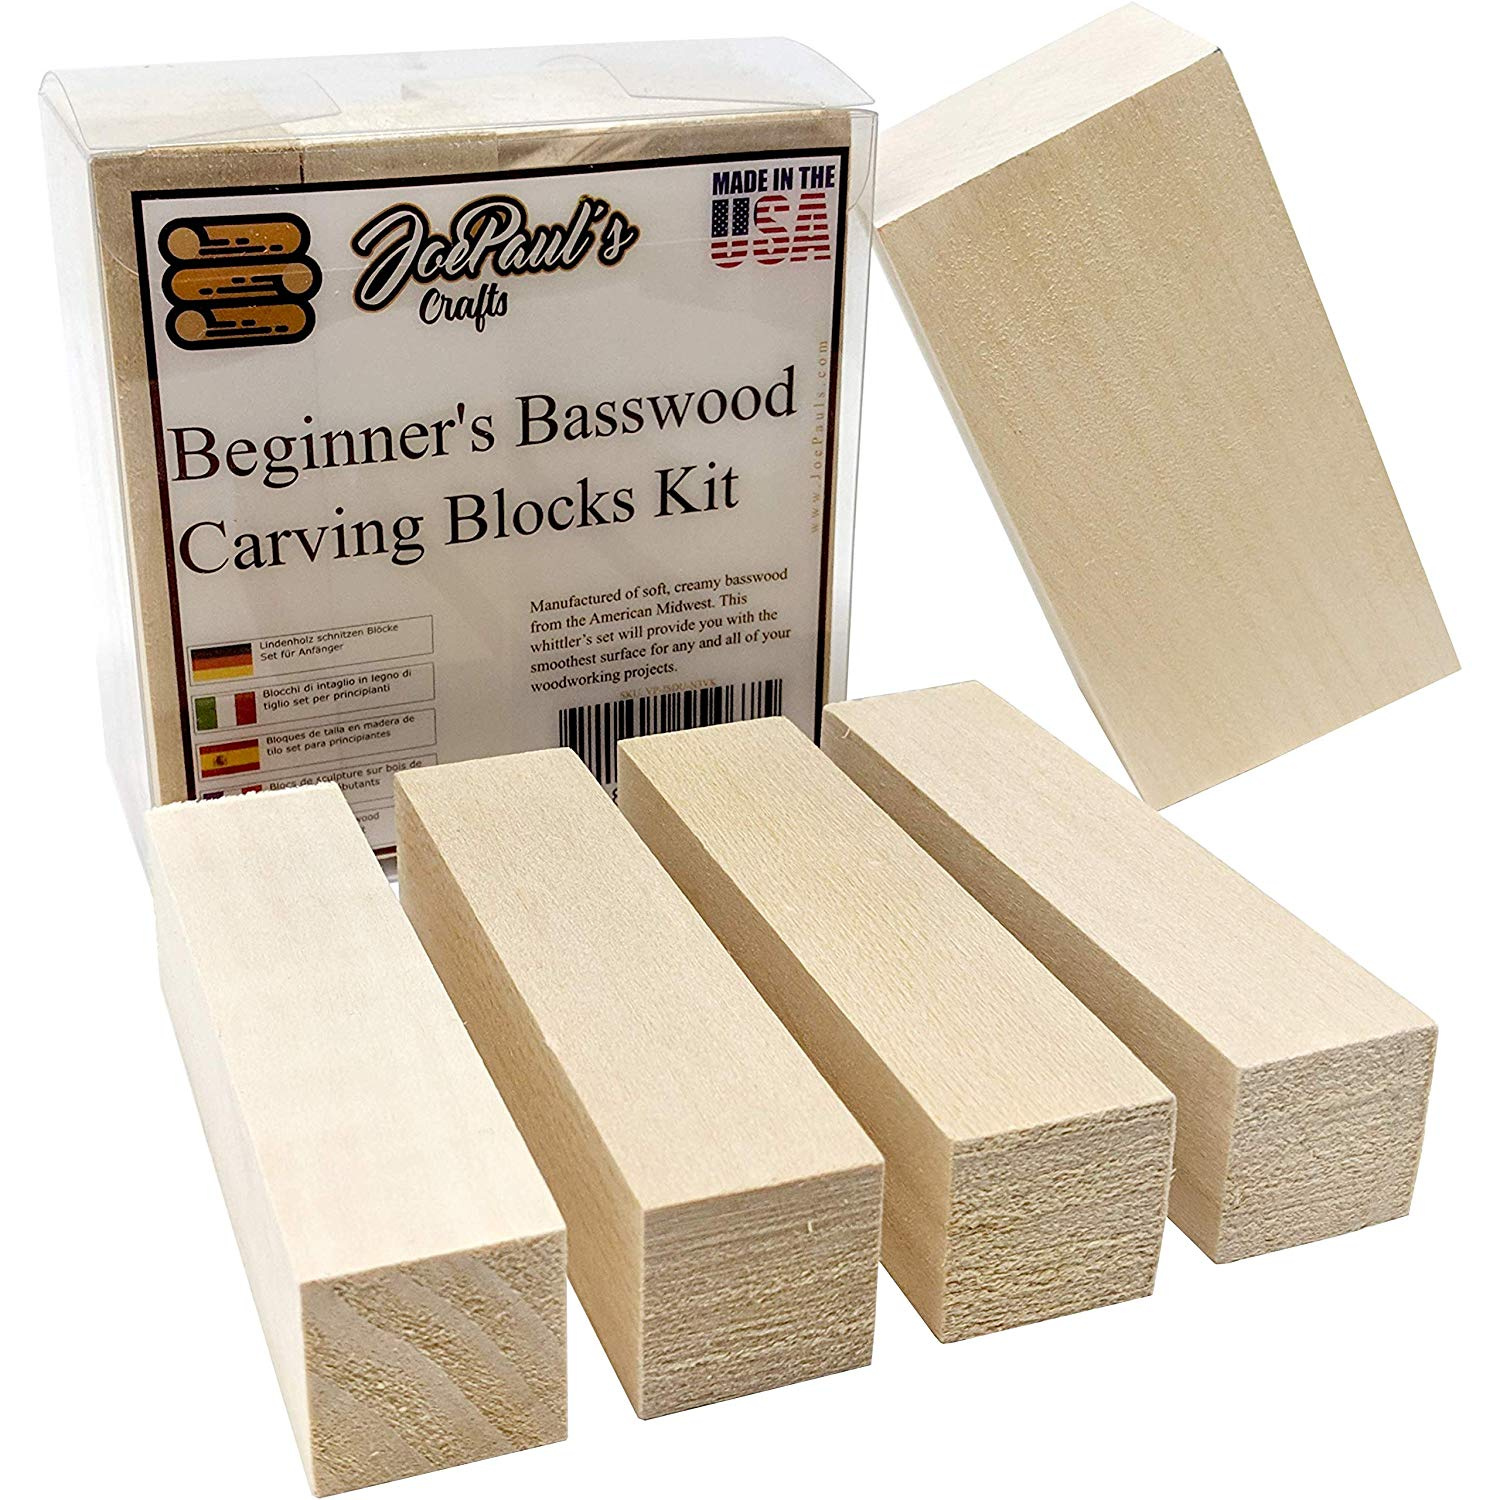 Basswood Beginner S Premium Carving Blocks Kit Best Wood Carving Kit For Kids Preferred Soft Wood Block Sizes Included Made In The Usa